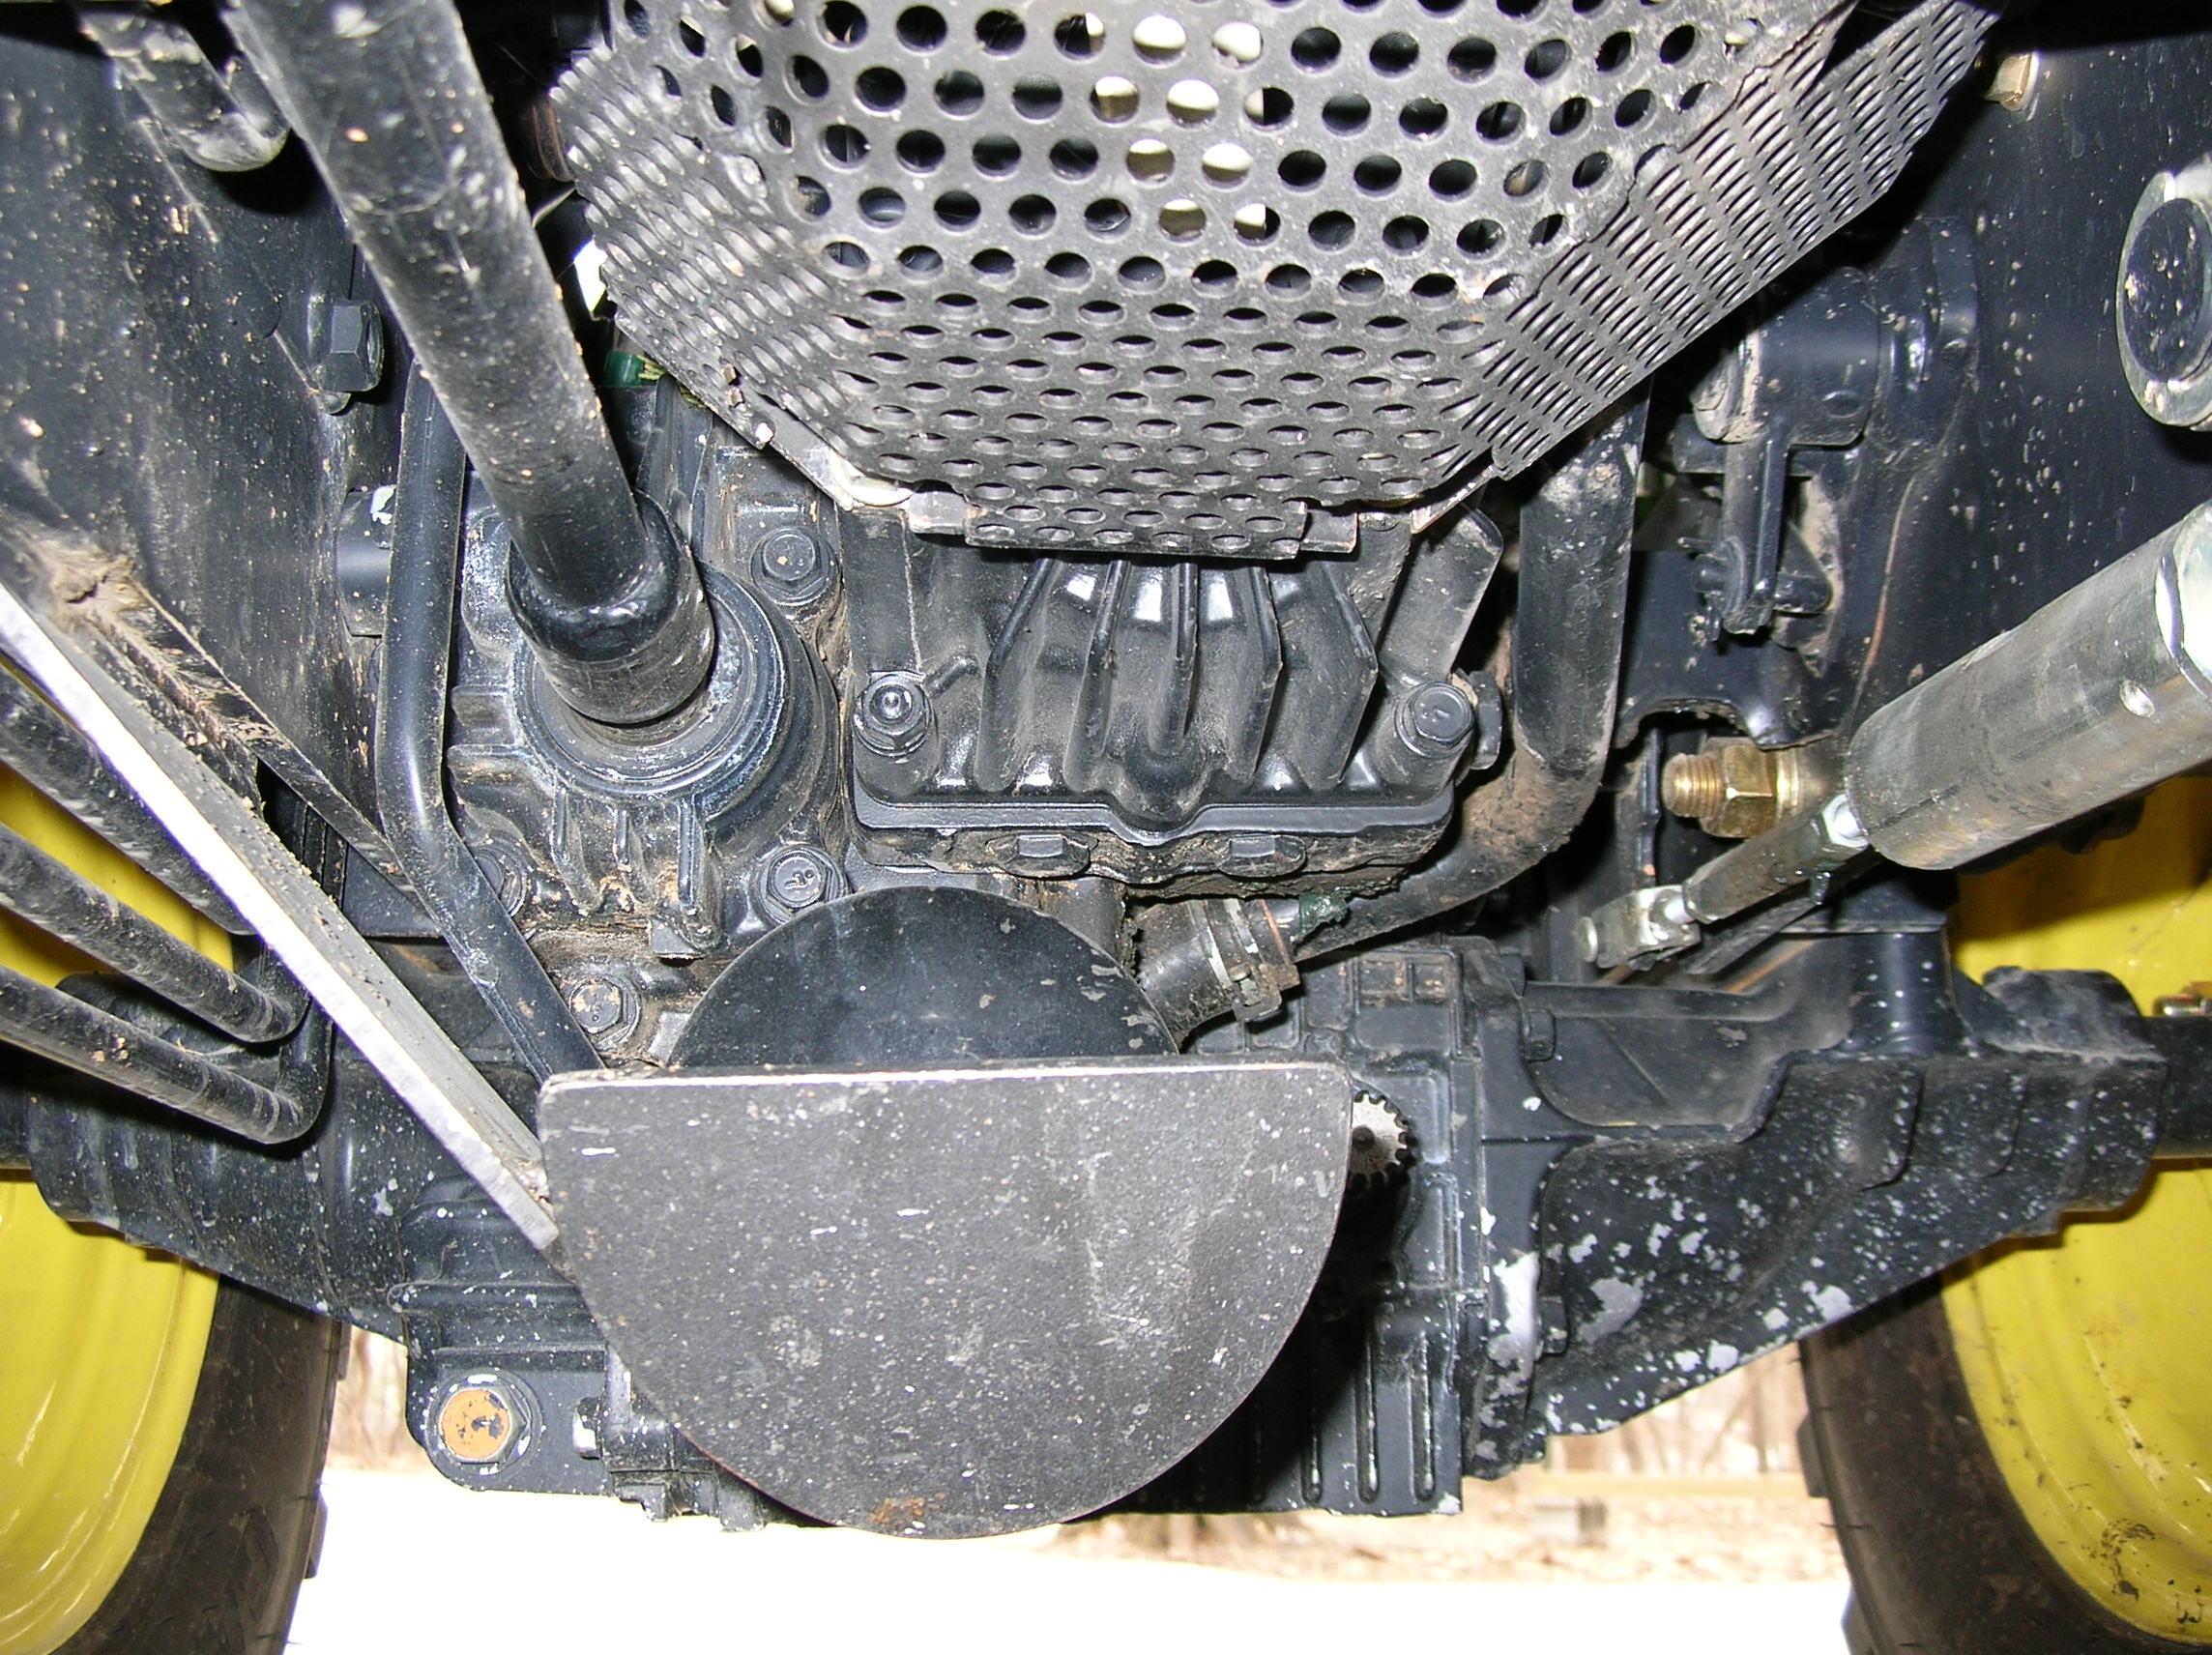 Tractor Fan Guard : Arcgh screwed up the transmission fan on my and